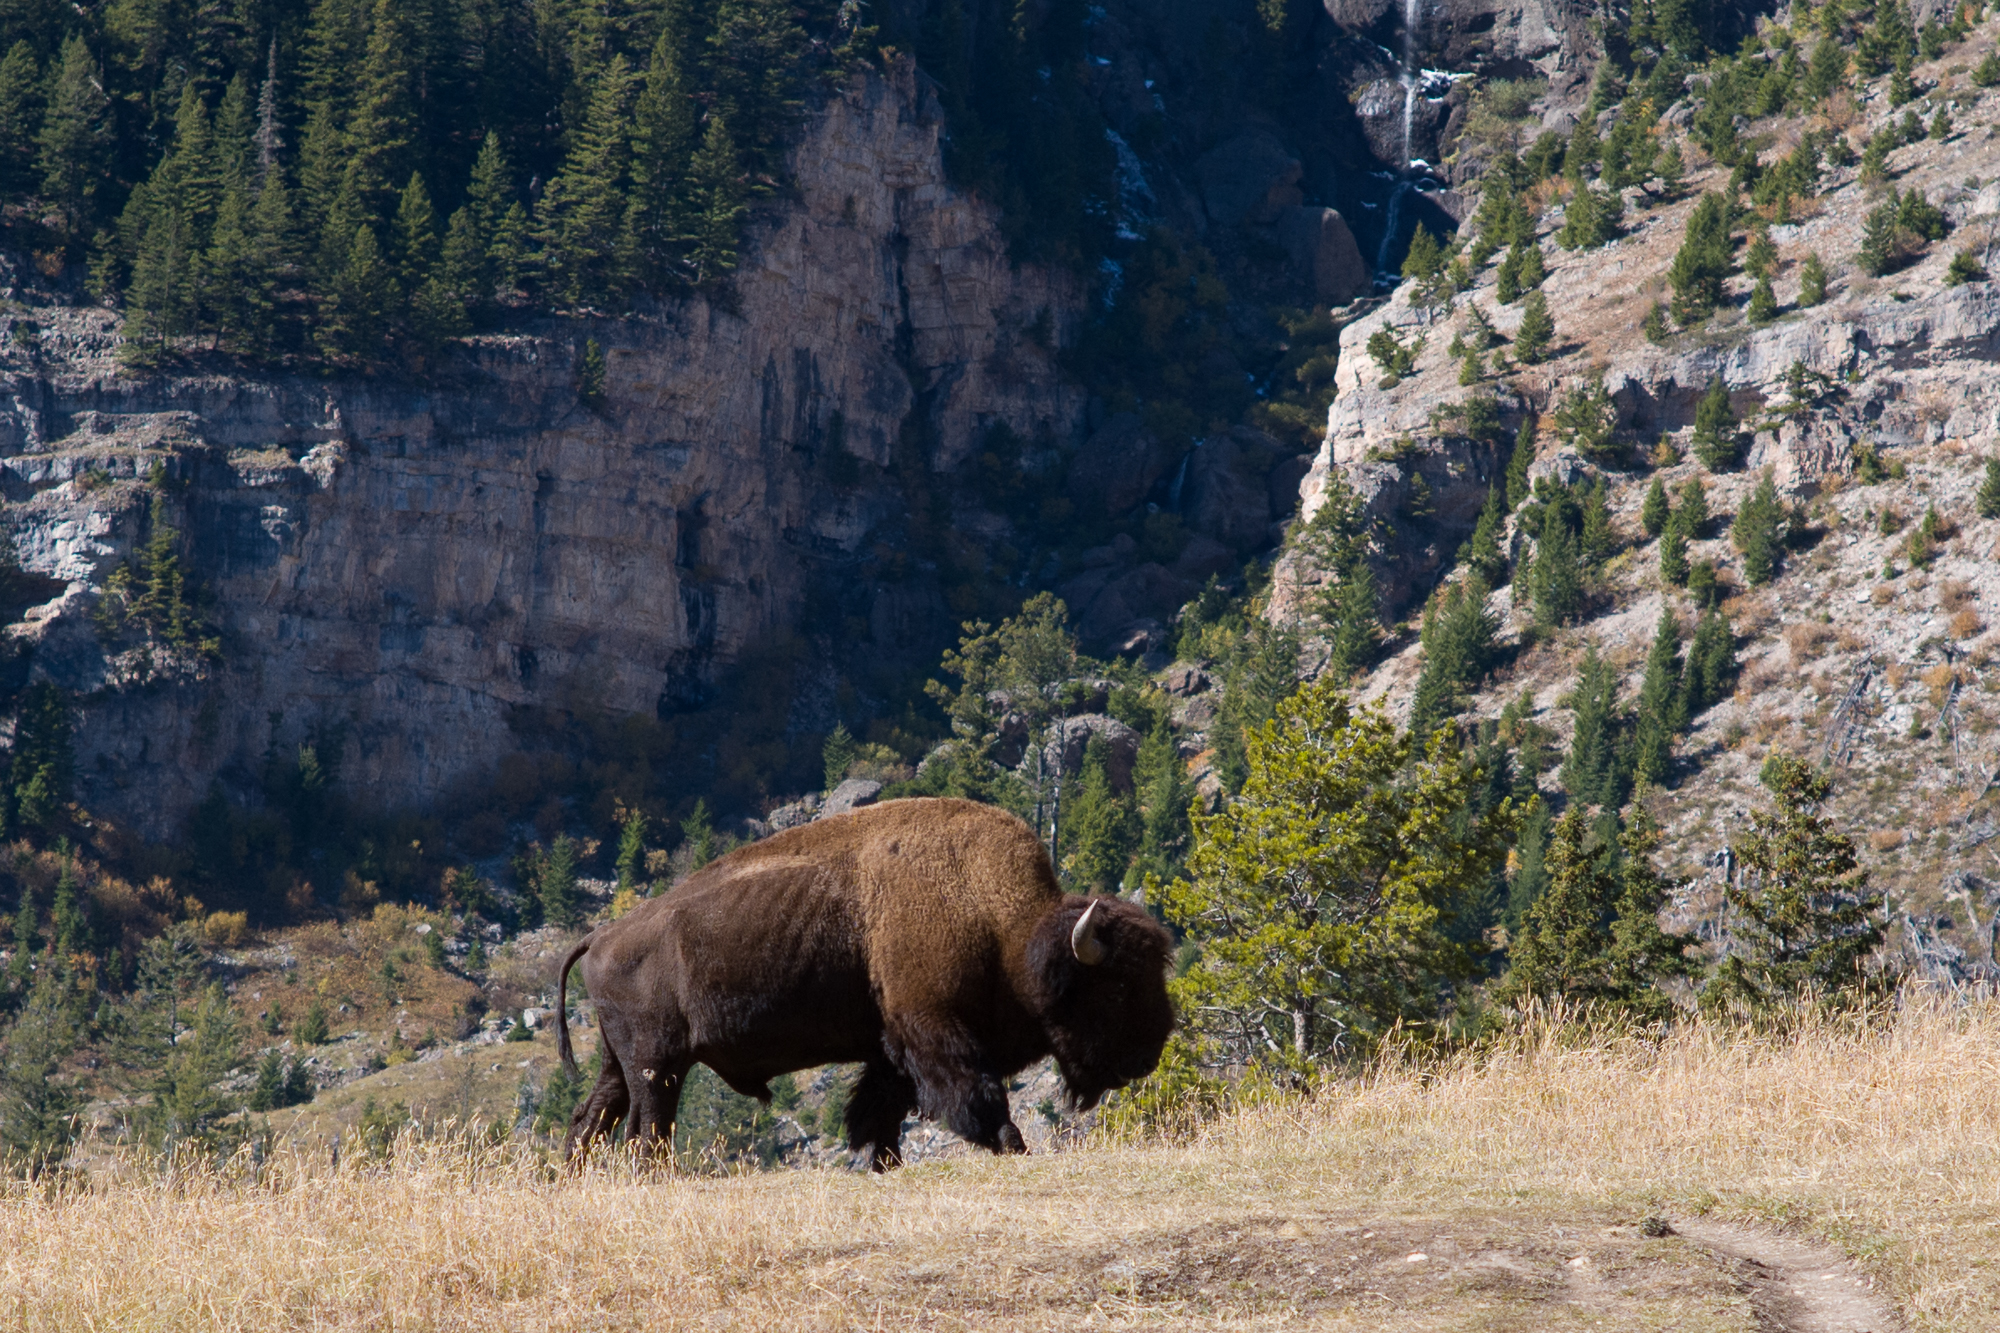 A bison in the Lamar valley